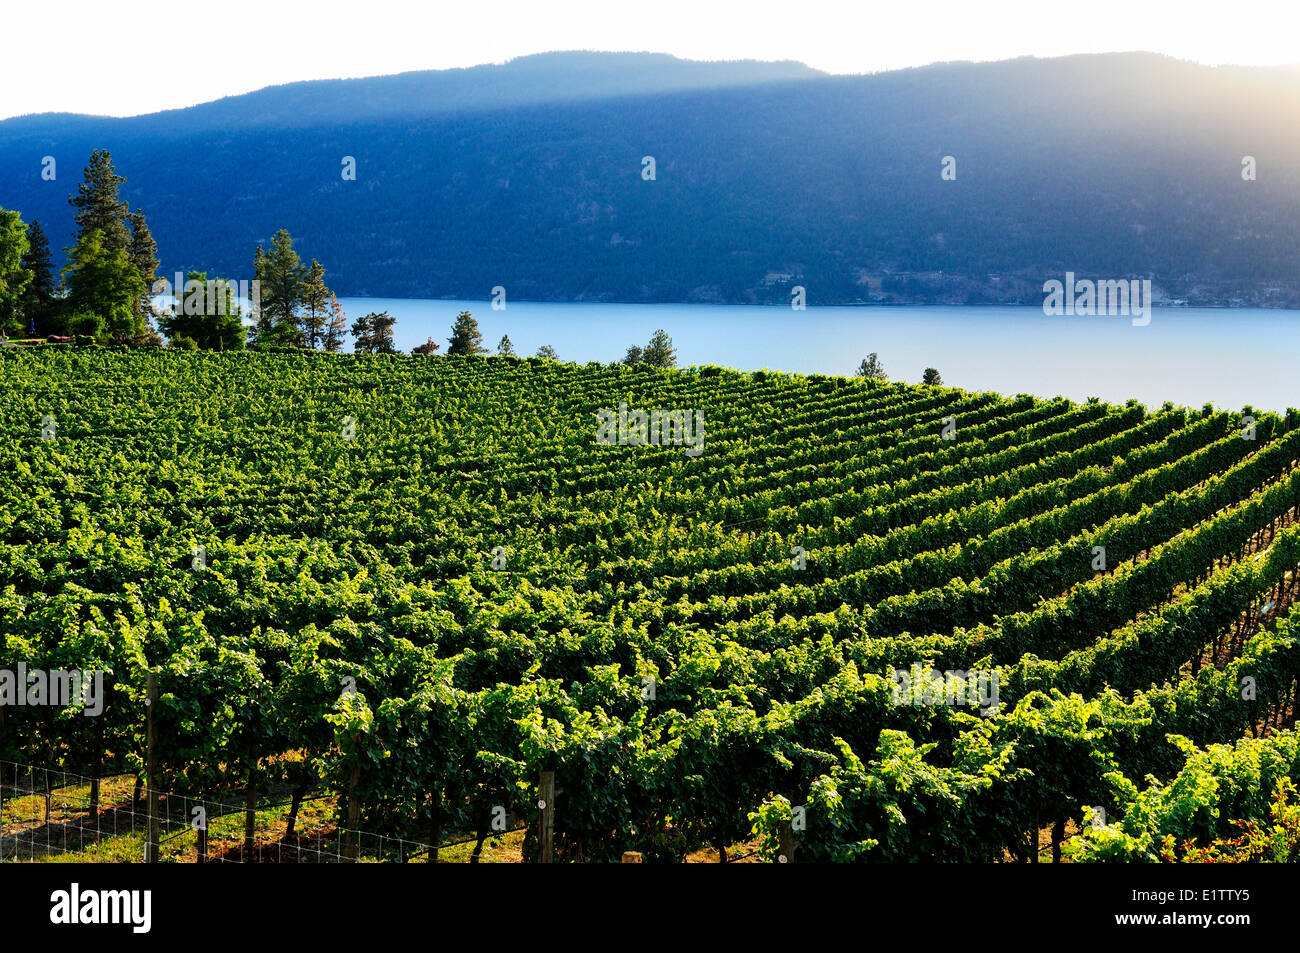 Rows of grapes from Arrowleaf Cellars vineyards near Okanagan Lake in Lake Country BC. & Rows of grapes from Arrowleaf Cellars vineyards near Okanagan Lake ...